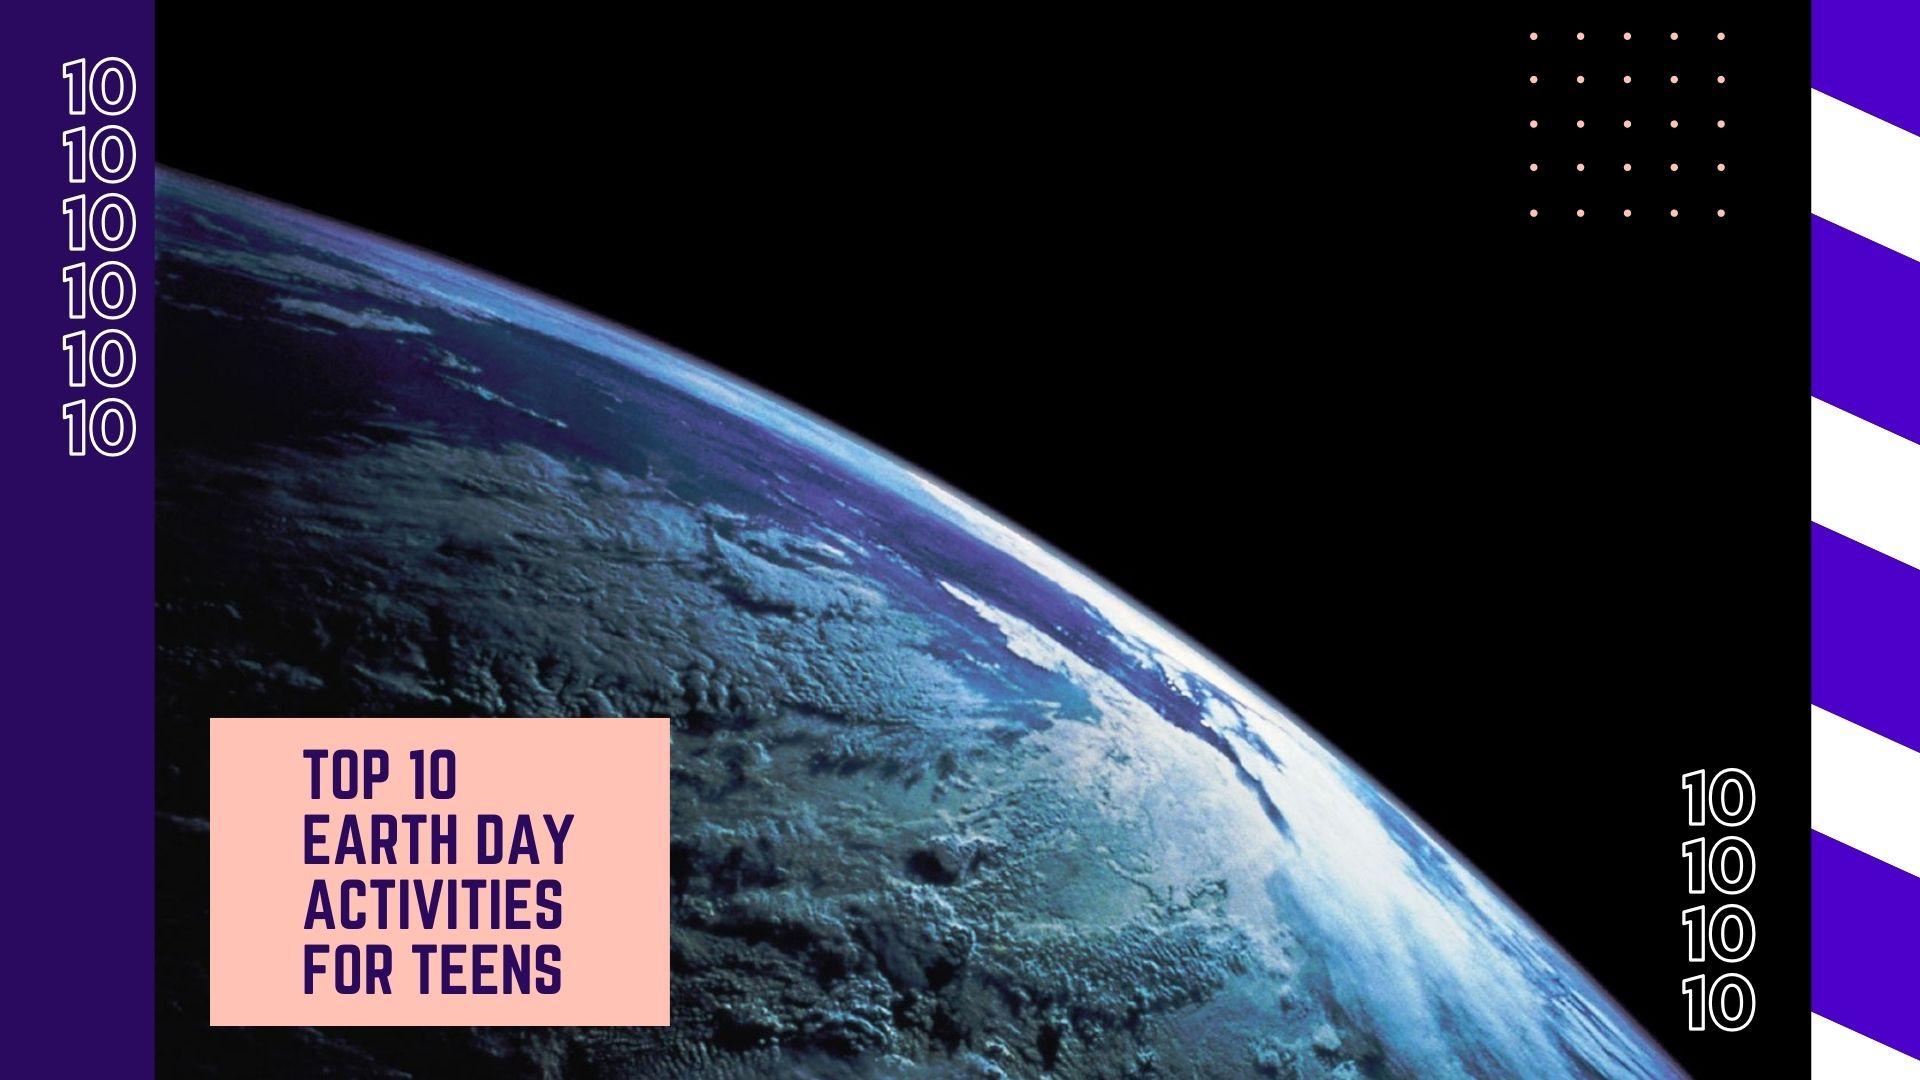 Earth Day activities for teens - View of Planet Earth